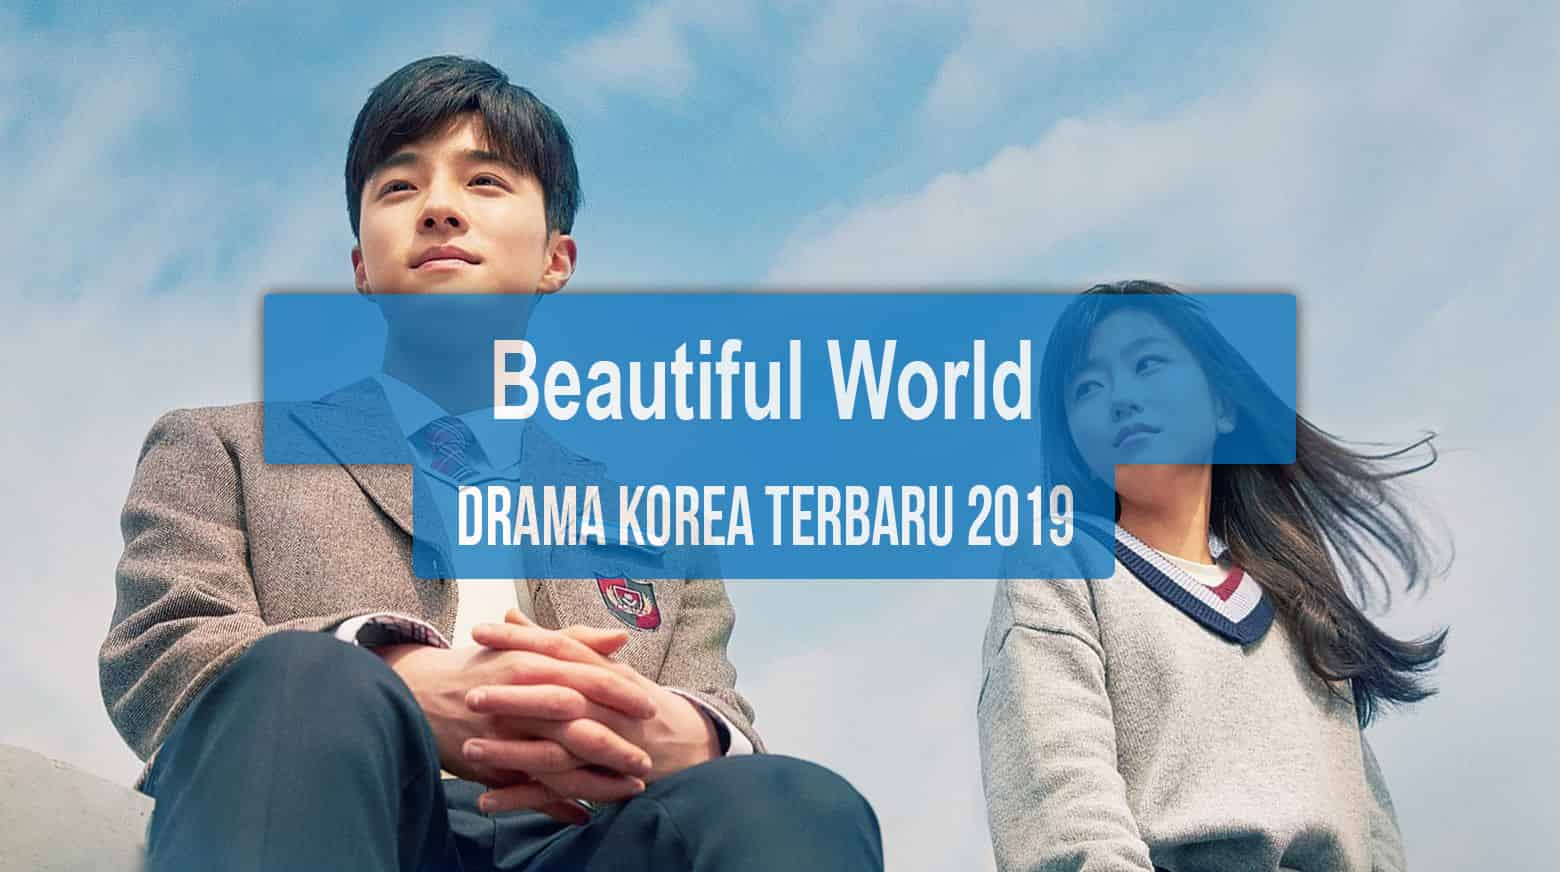 Sinopsis Tanggal Rilis Jadwal Drama Korea Beautiful World Bahasa Indonesia